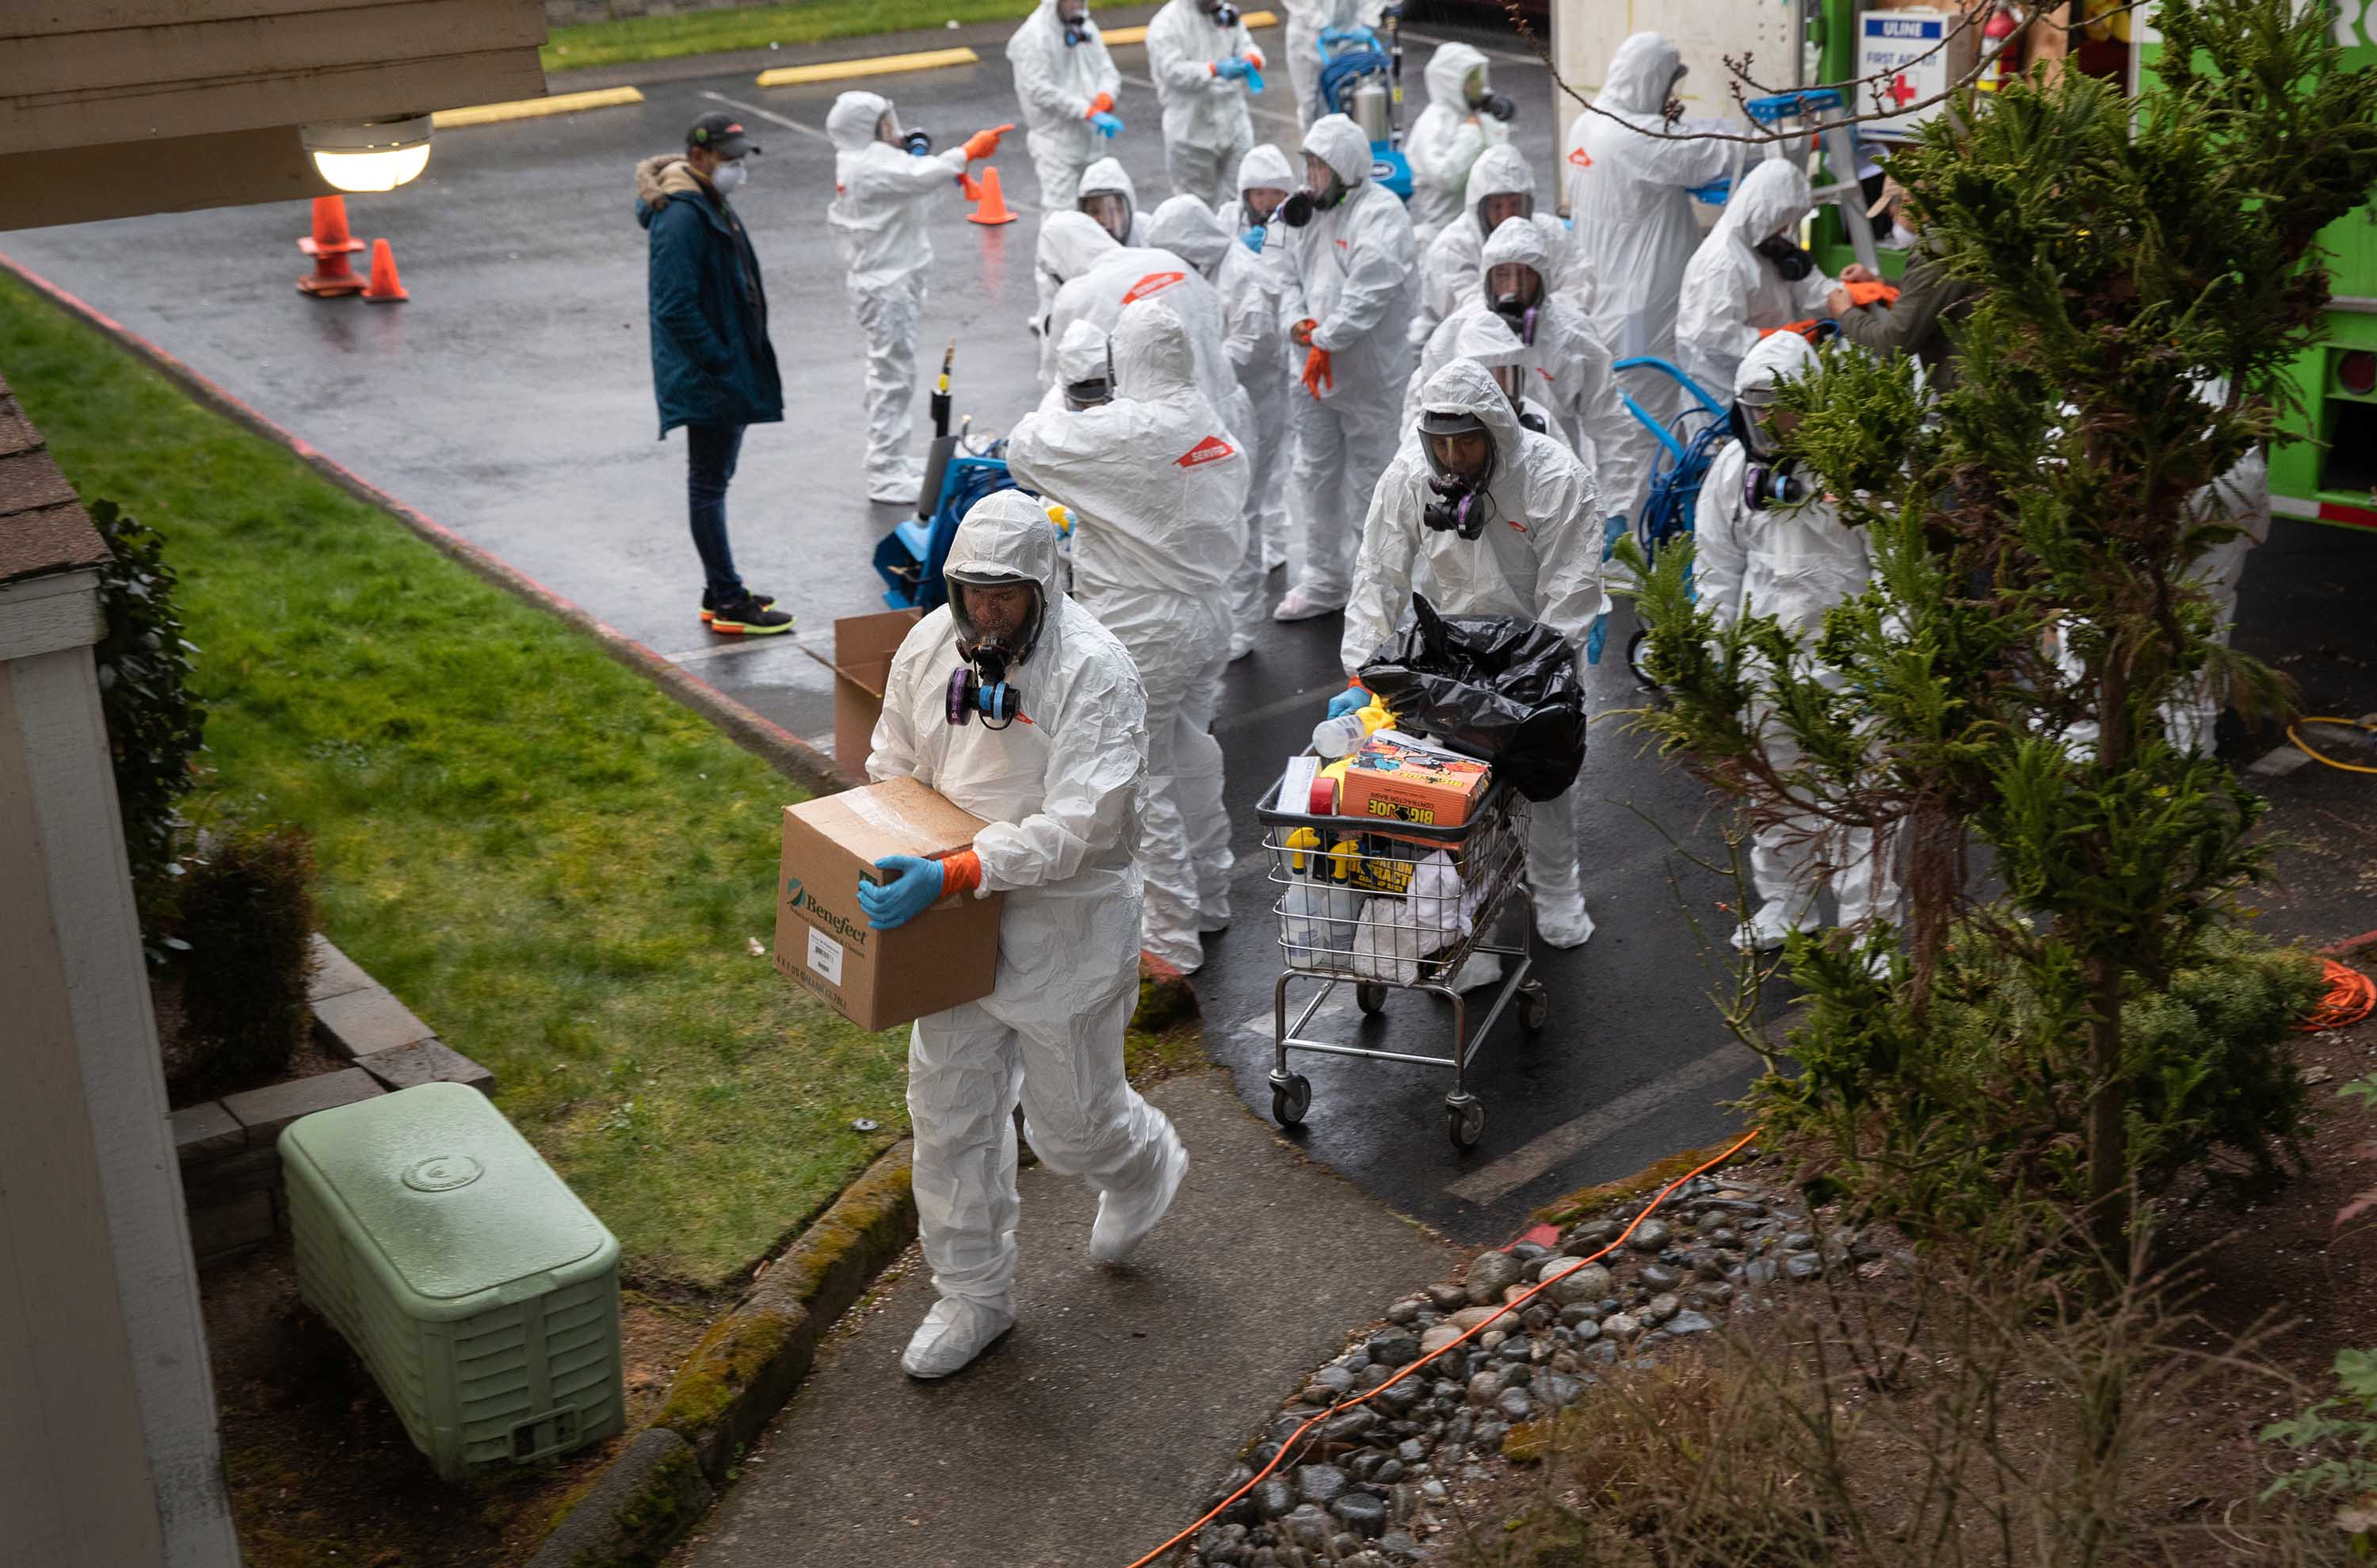 A cleaning crew takes disinfecting equipment into the Life Care Center on March 12, in Kirkland, Washington, where coronavirus deaths have been reported.